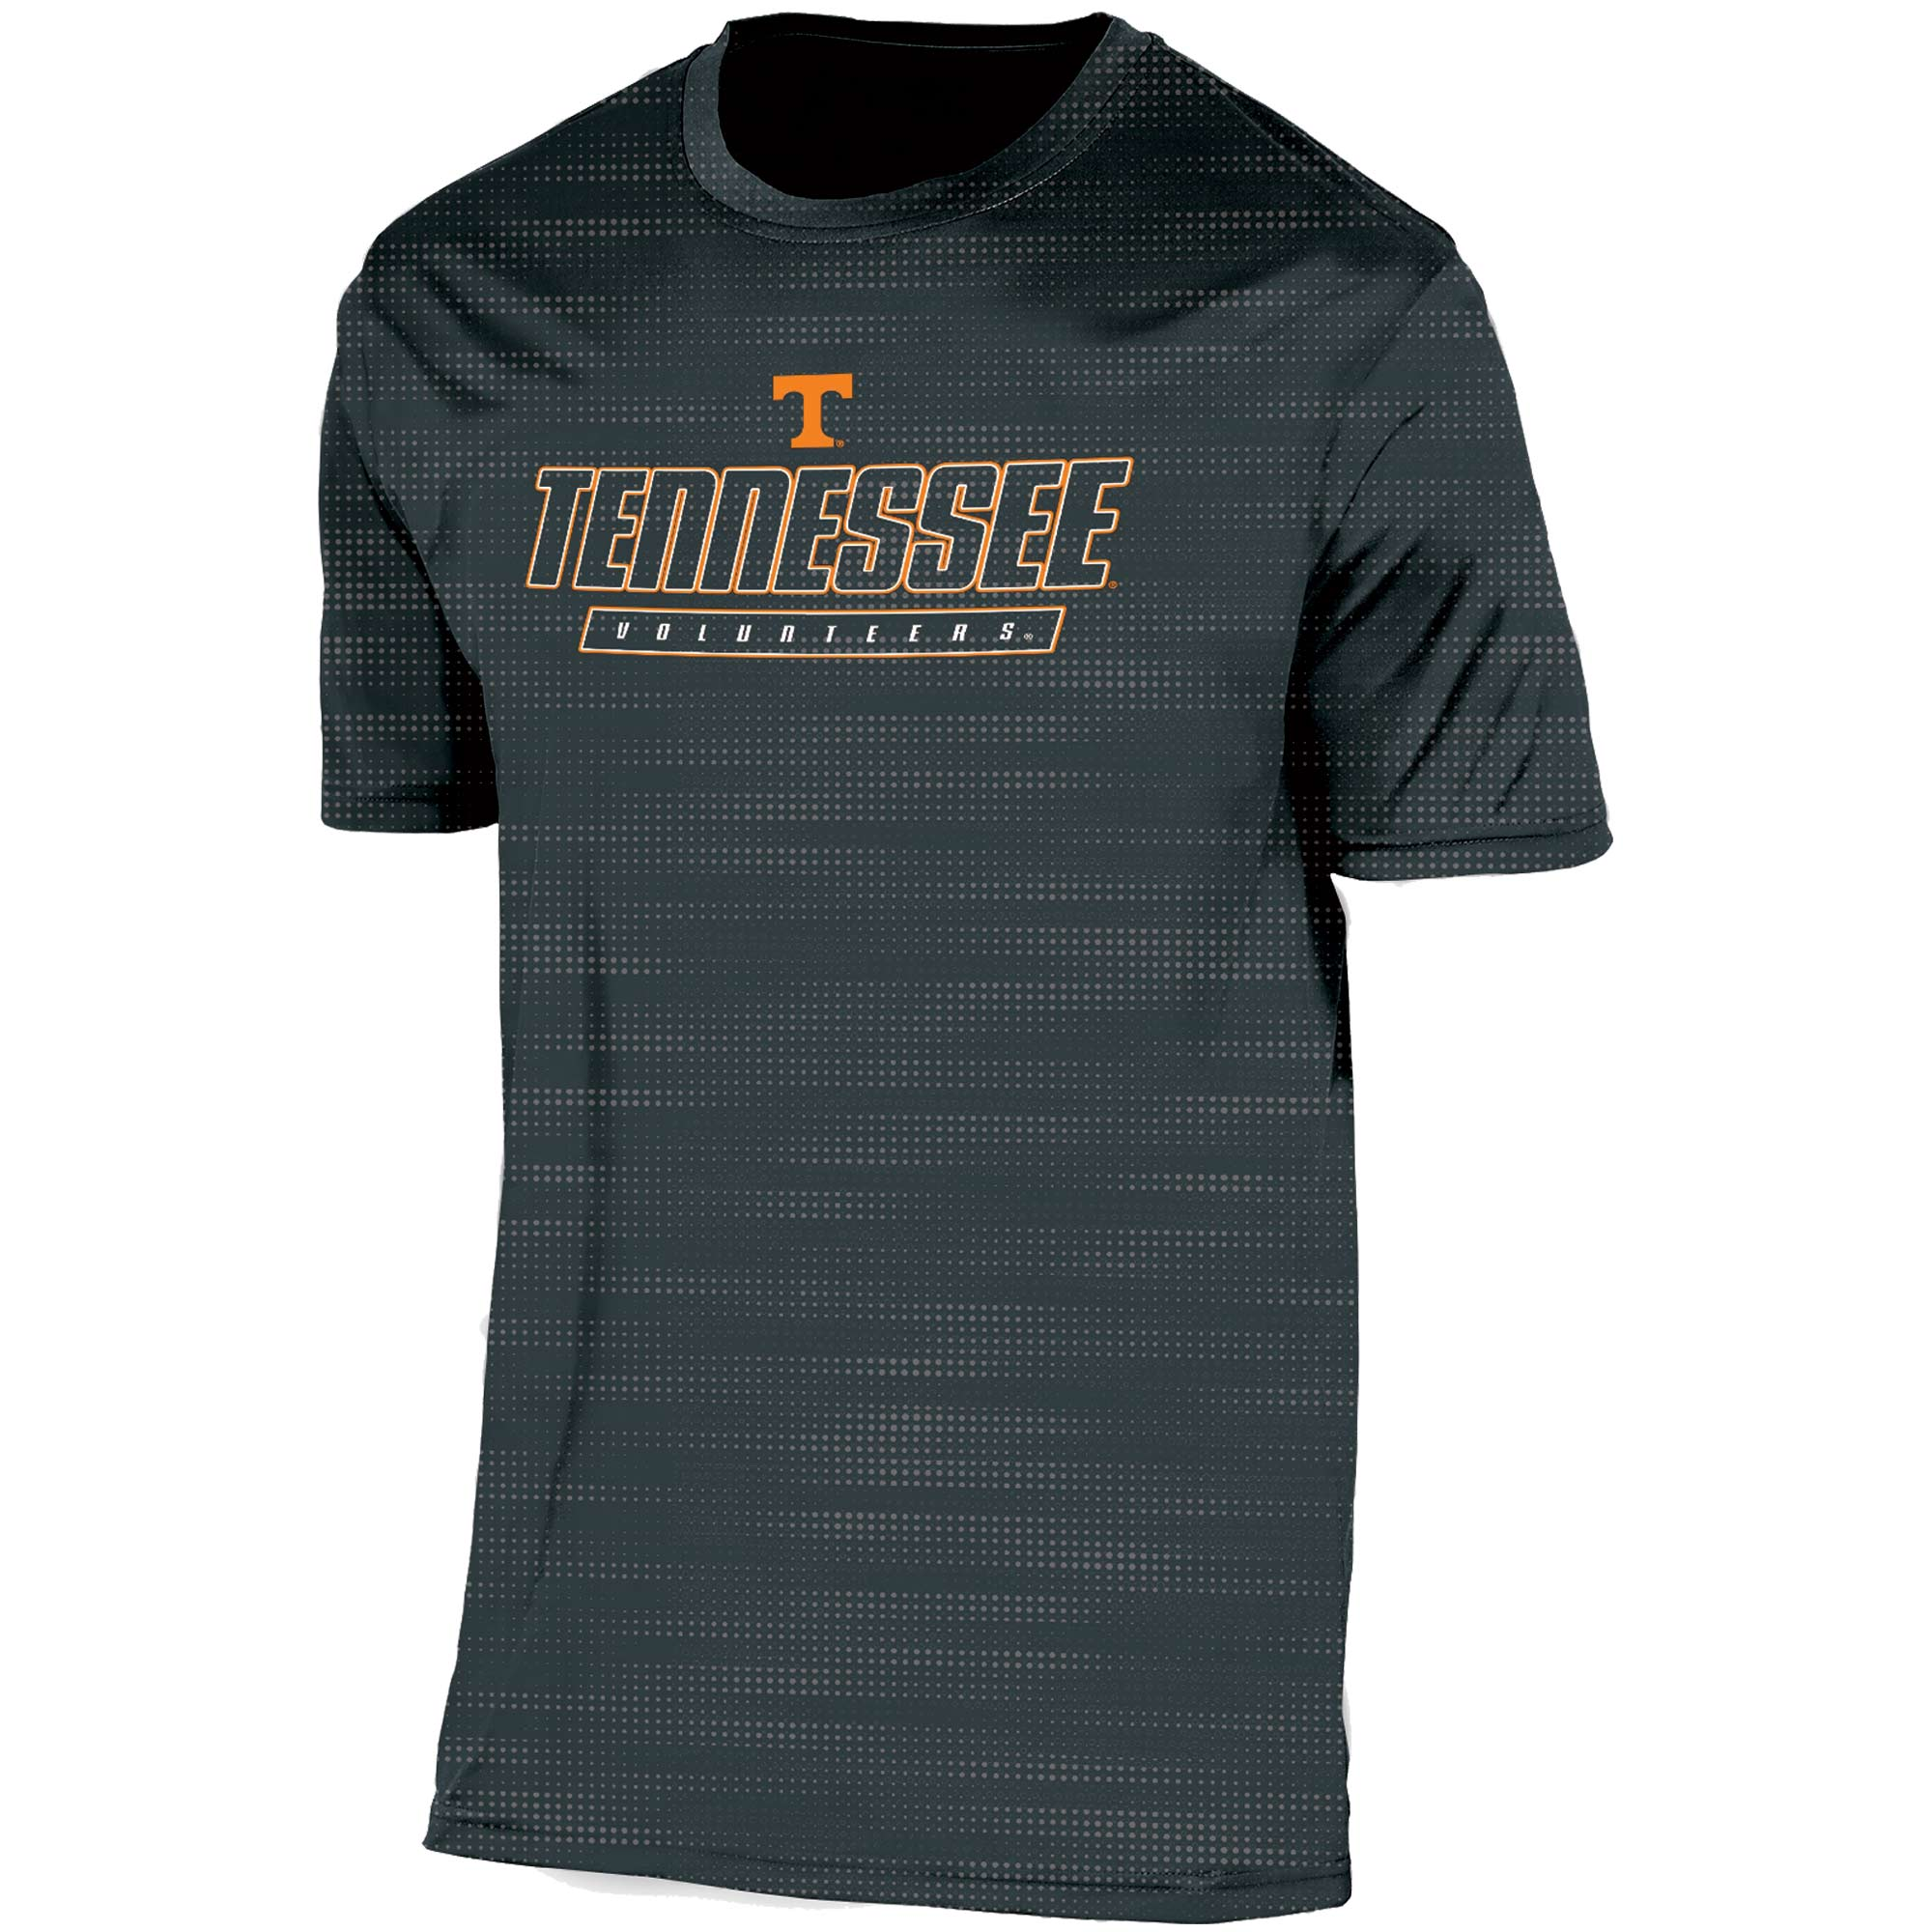 Men's Russell Black Tennessee Volunteers Embossed Synthetic T-Shirt